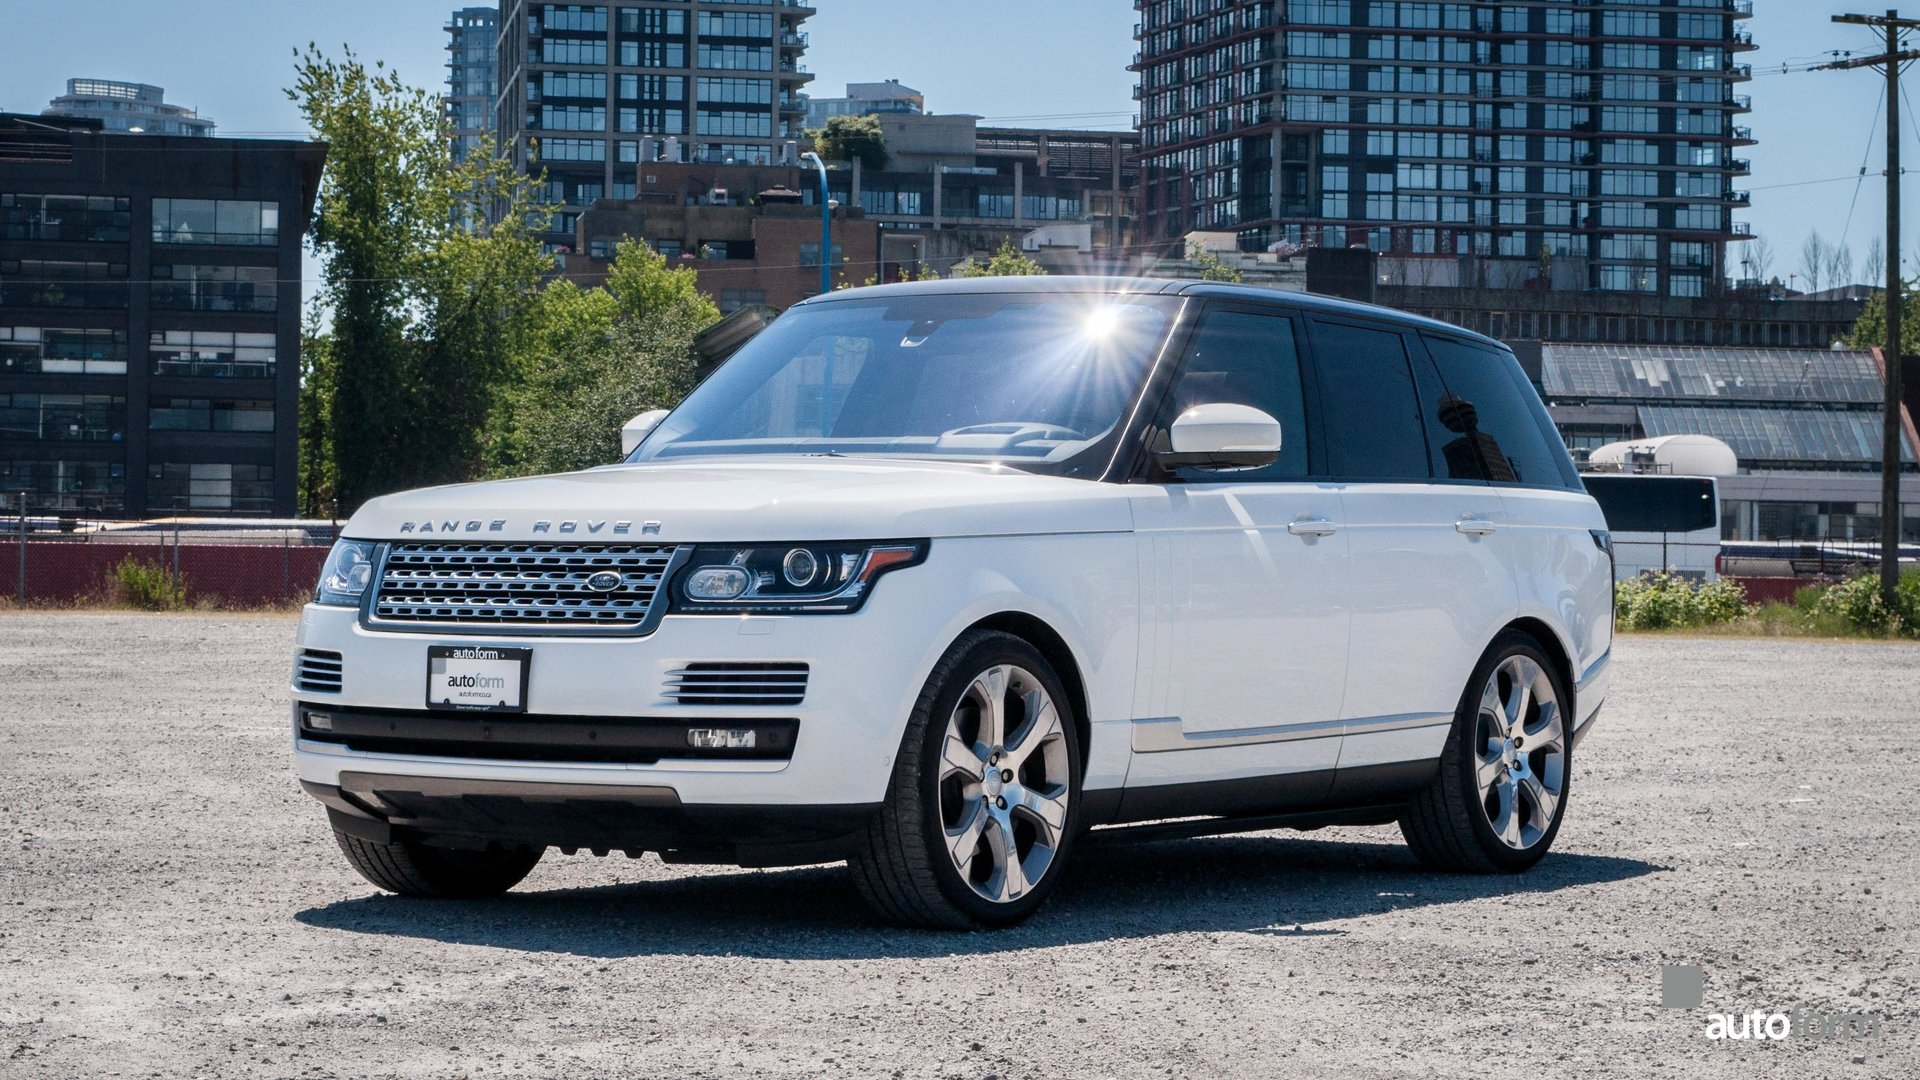 13938a9a45e3b hd 2016 land rover range rover autobiography supercharged